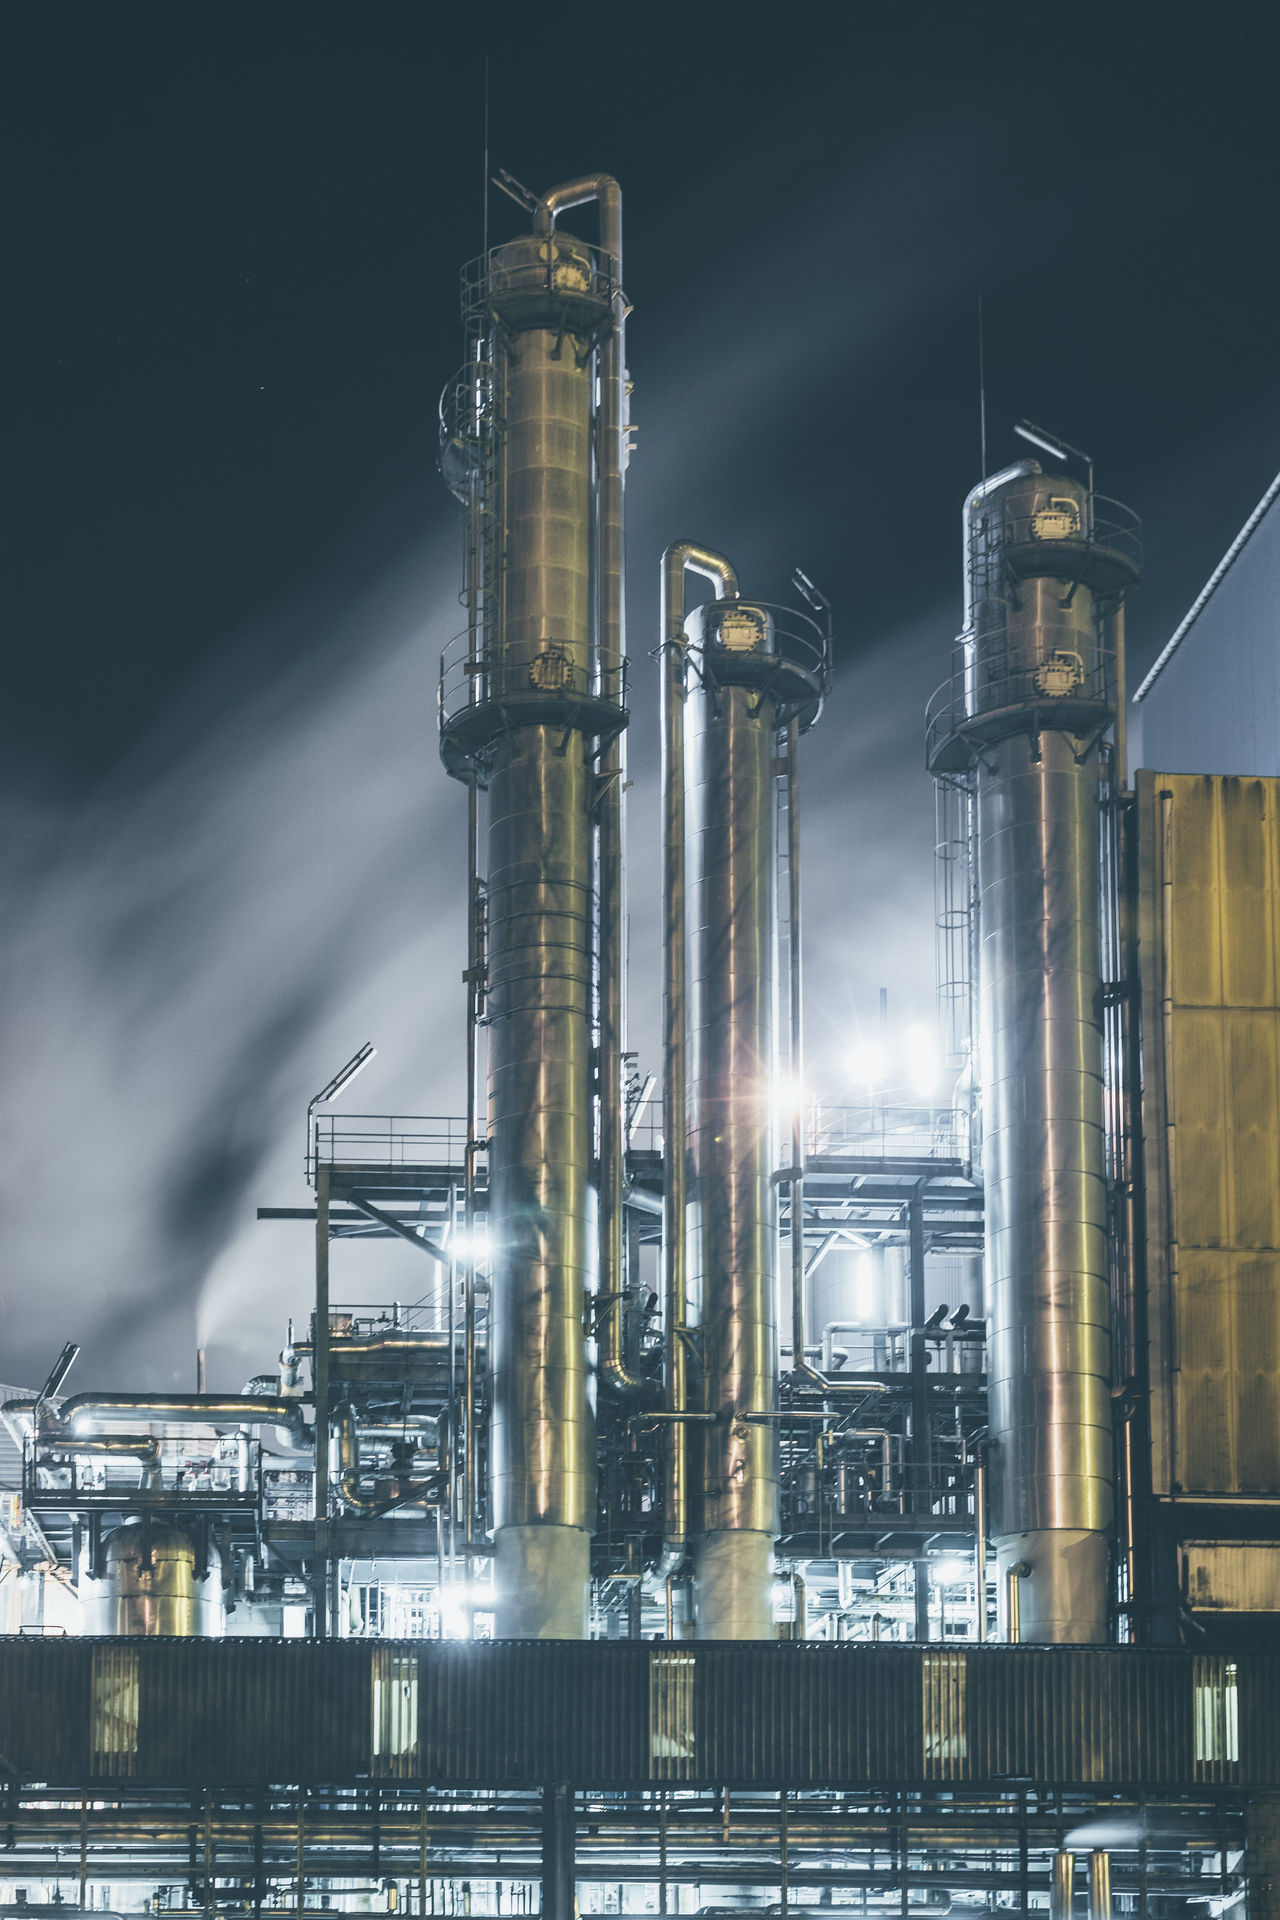 Business Finance And Industry Chemical Plant Distillation Environment Factory Fossil Fuel Fuel And Power Generation Illuminated Industry Metal Night No People Outdoors Pipeline Refinery Refueling Technology